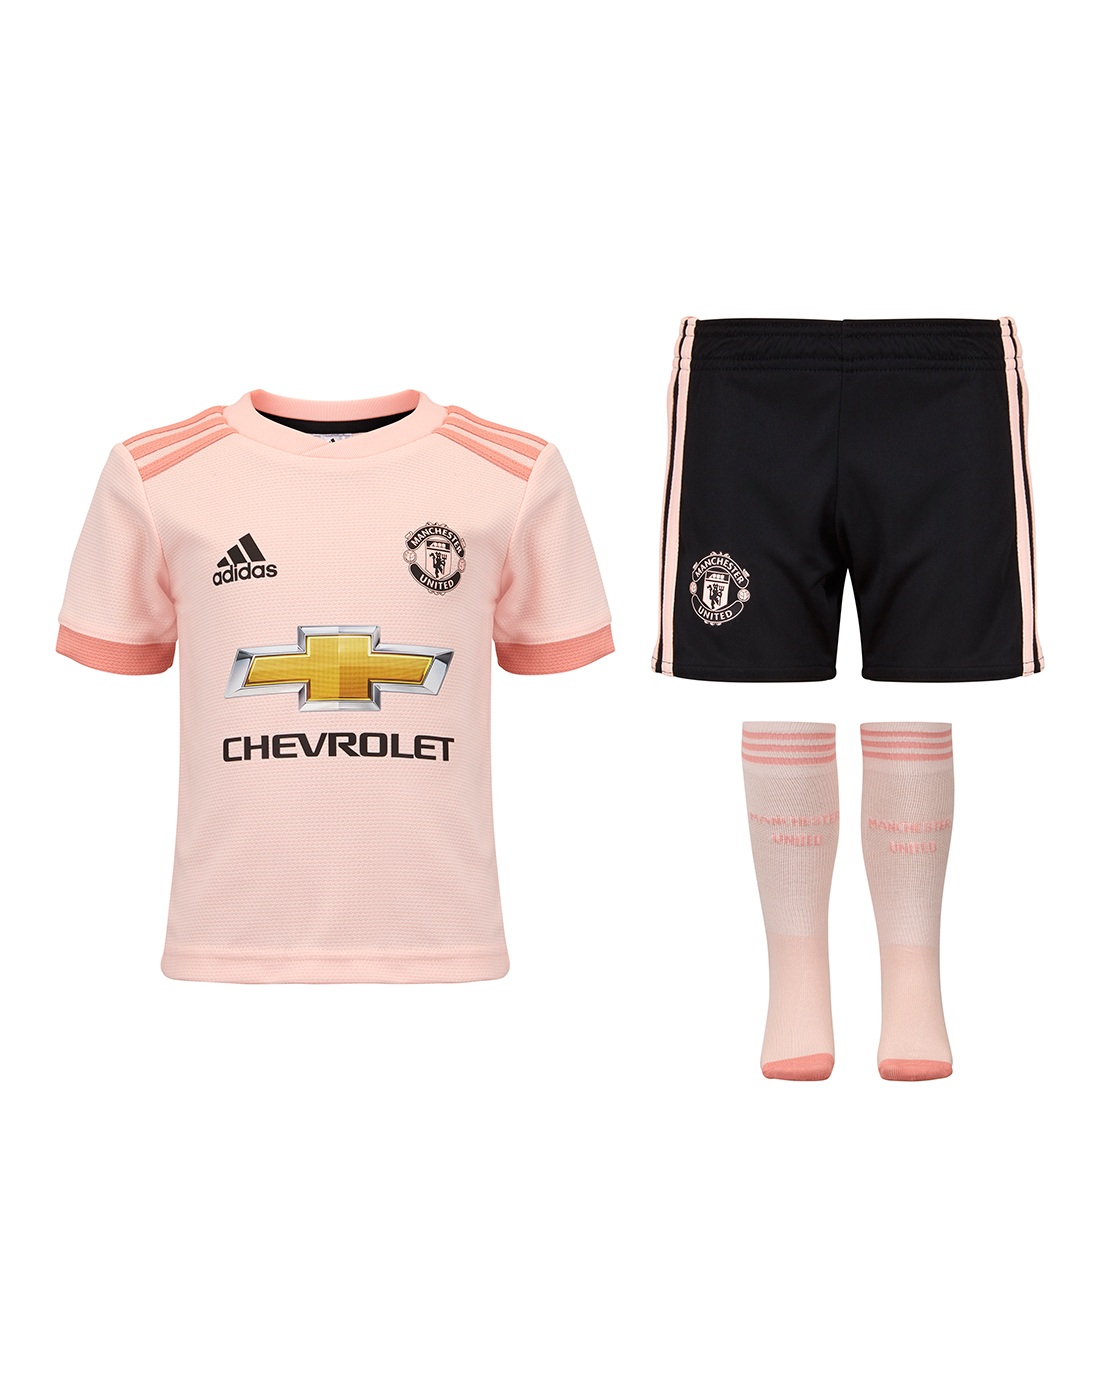 Kids Man United 18 19 Away Kit Adidas Life Style Sports